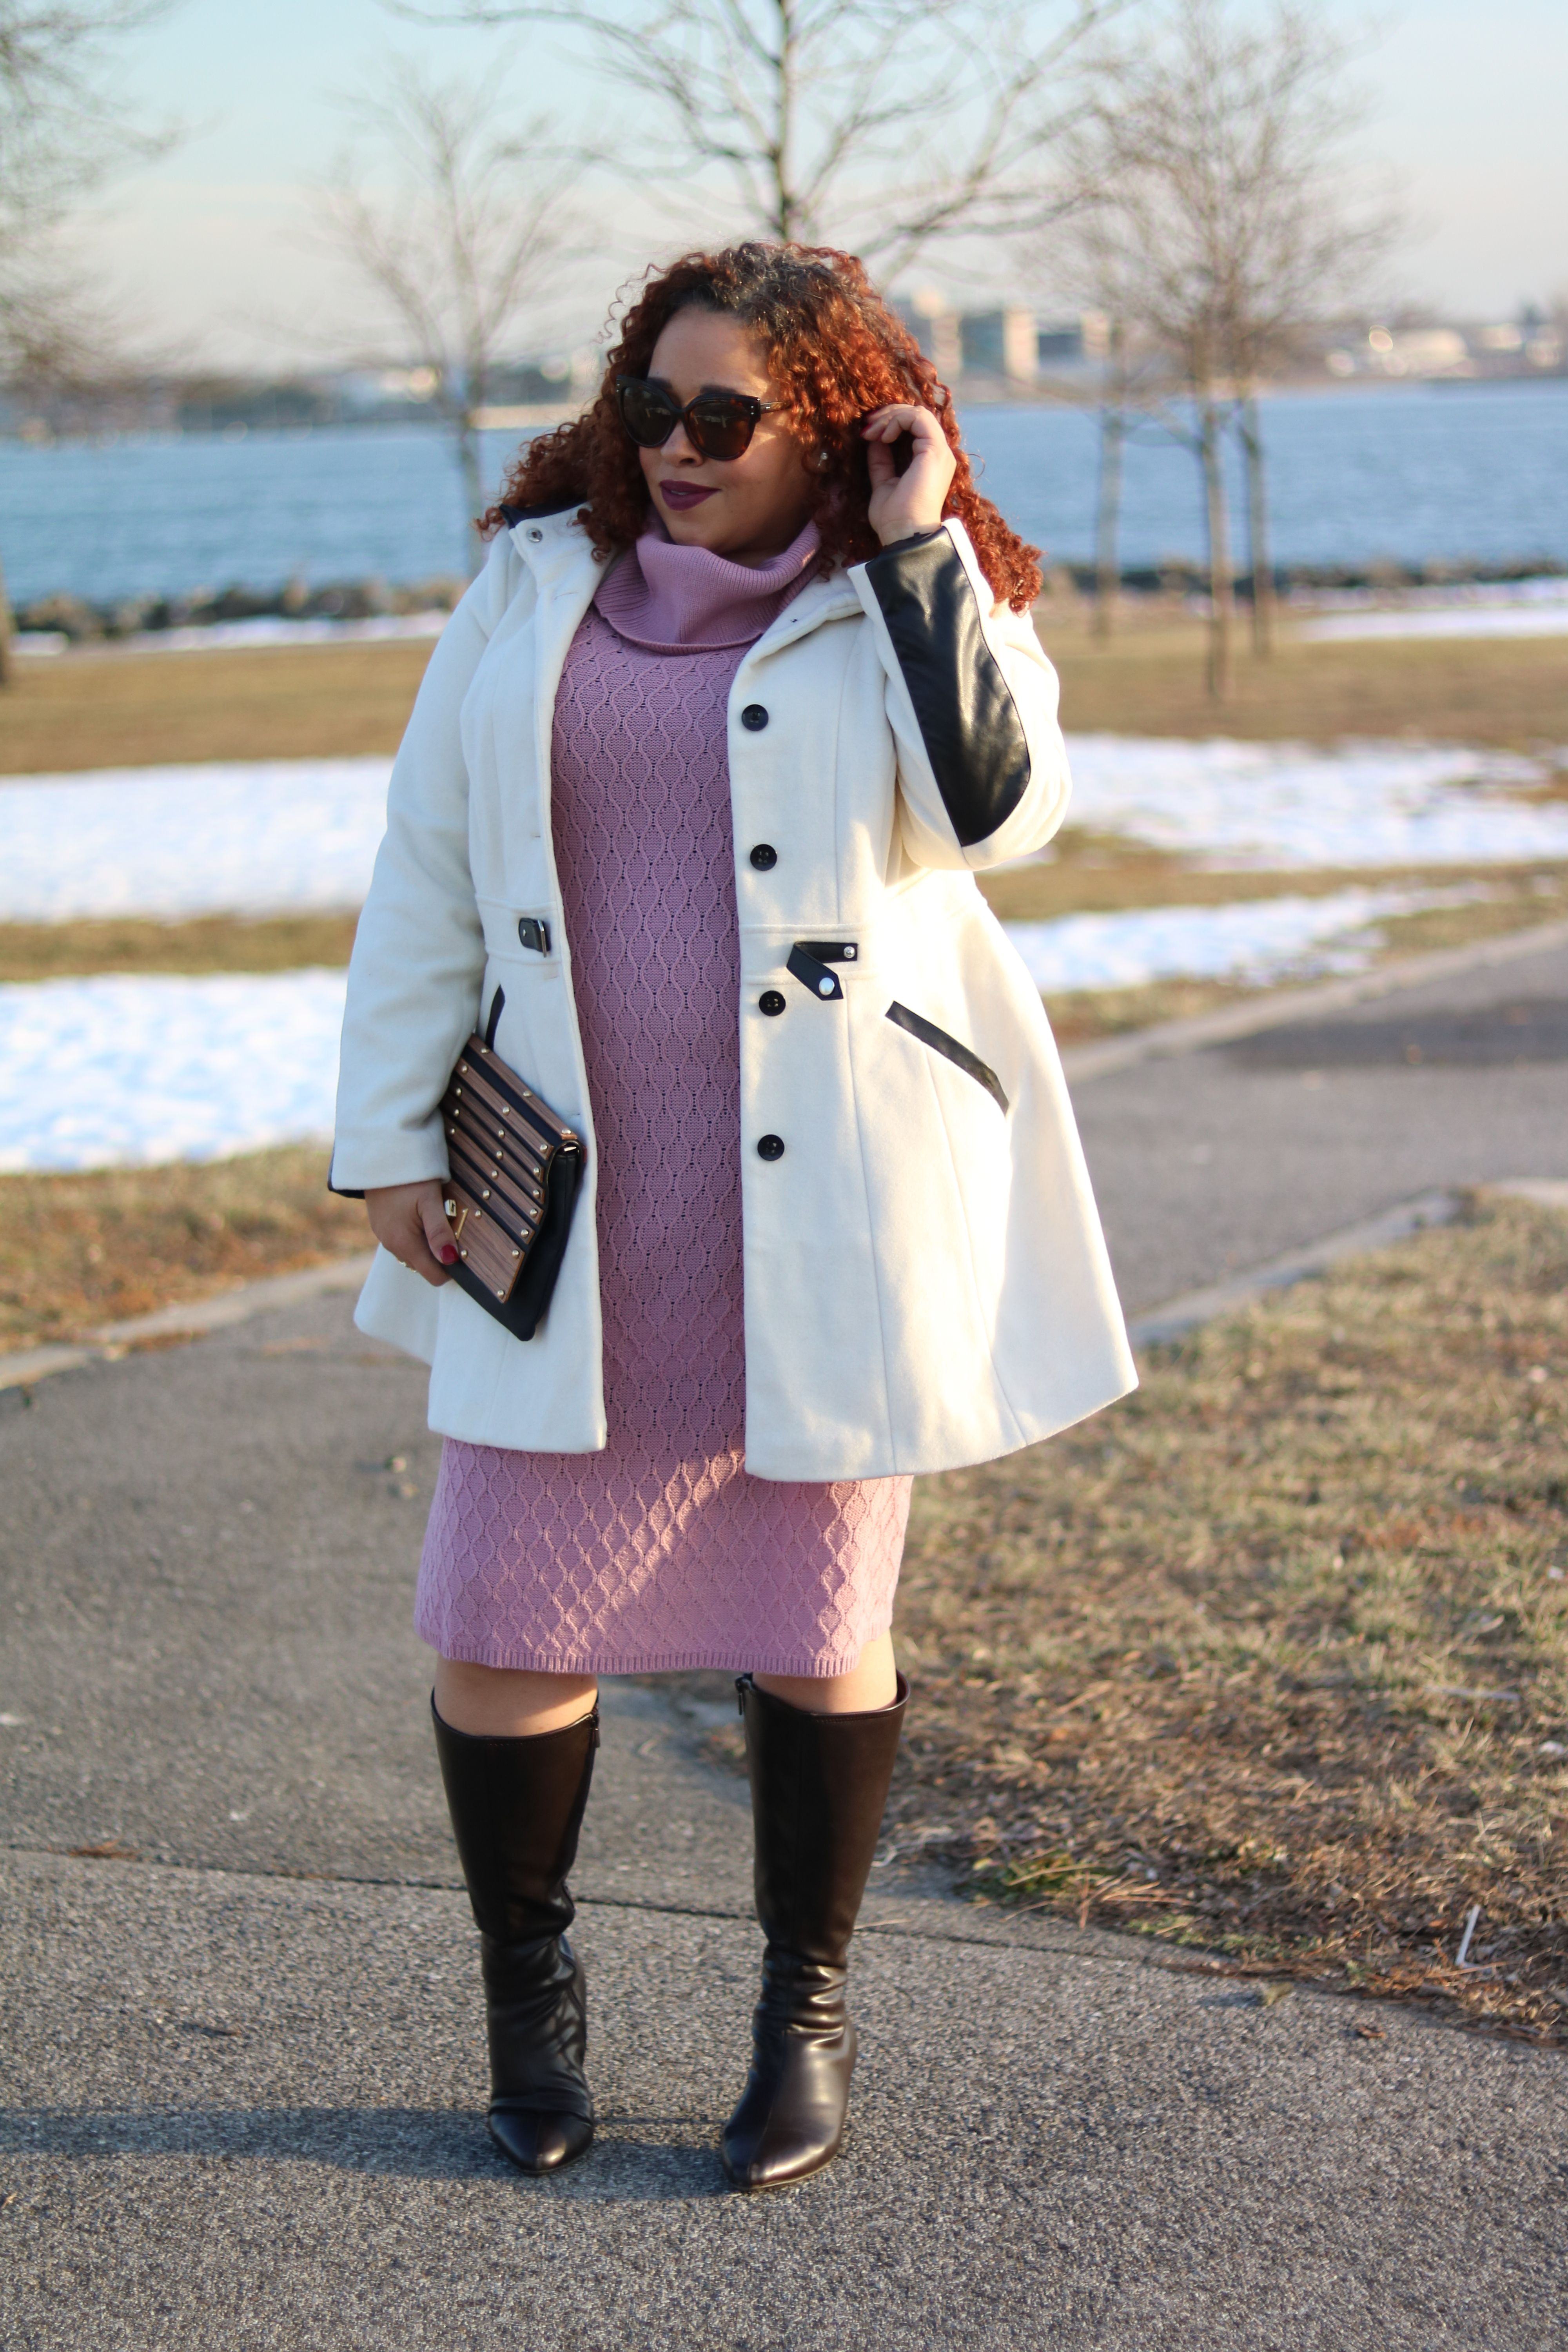 We Love How Instagram User Lapecosapreciosa Styled This Gorgeous Outfit Perfect For A Warm